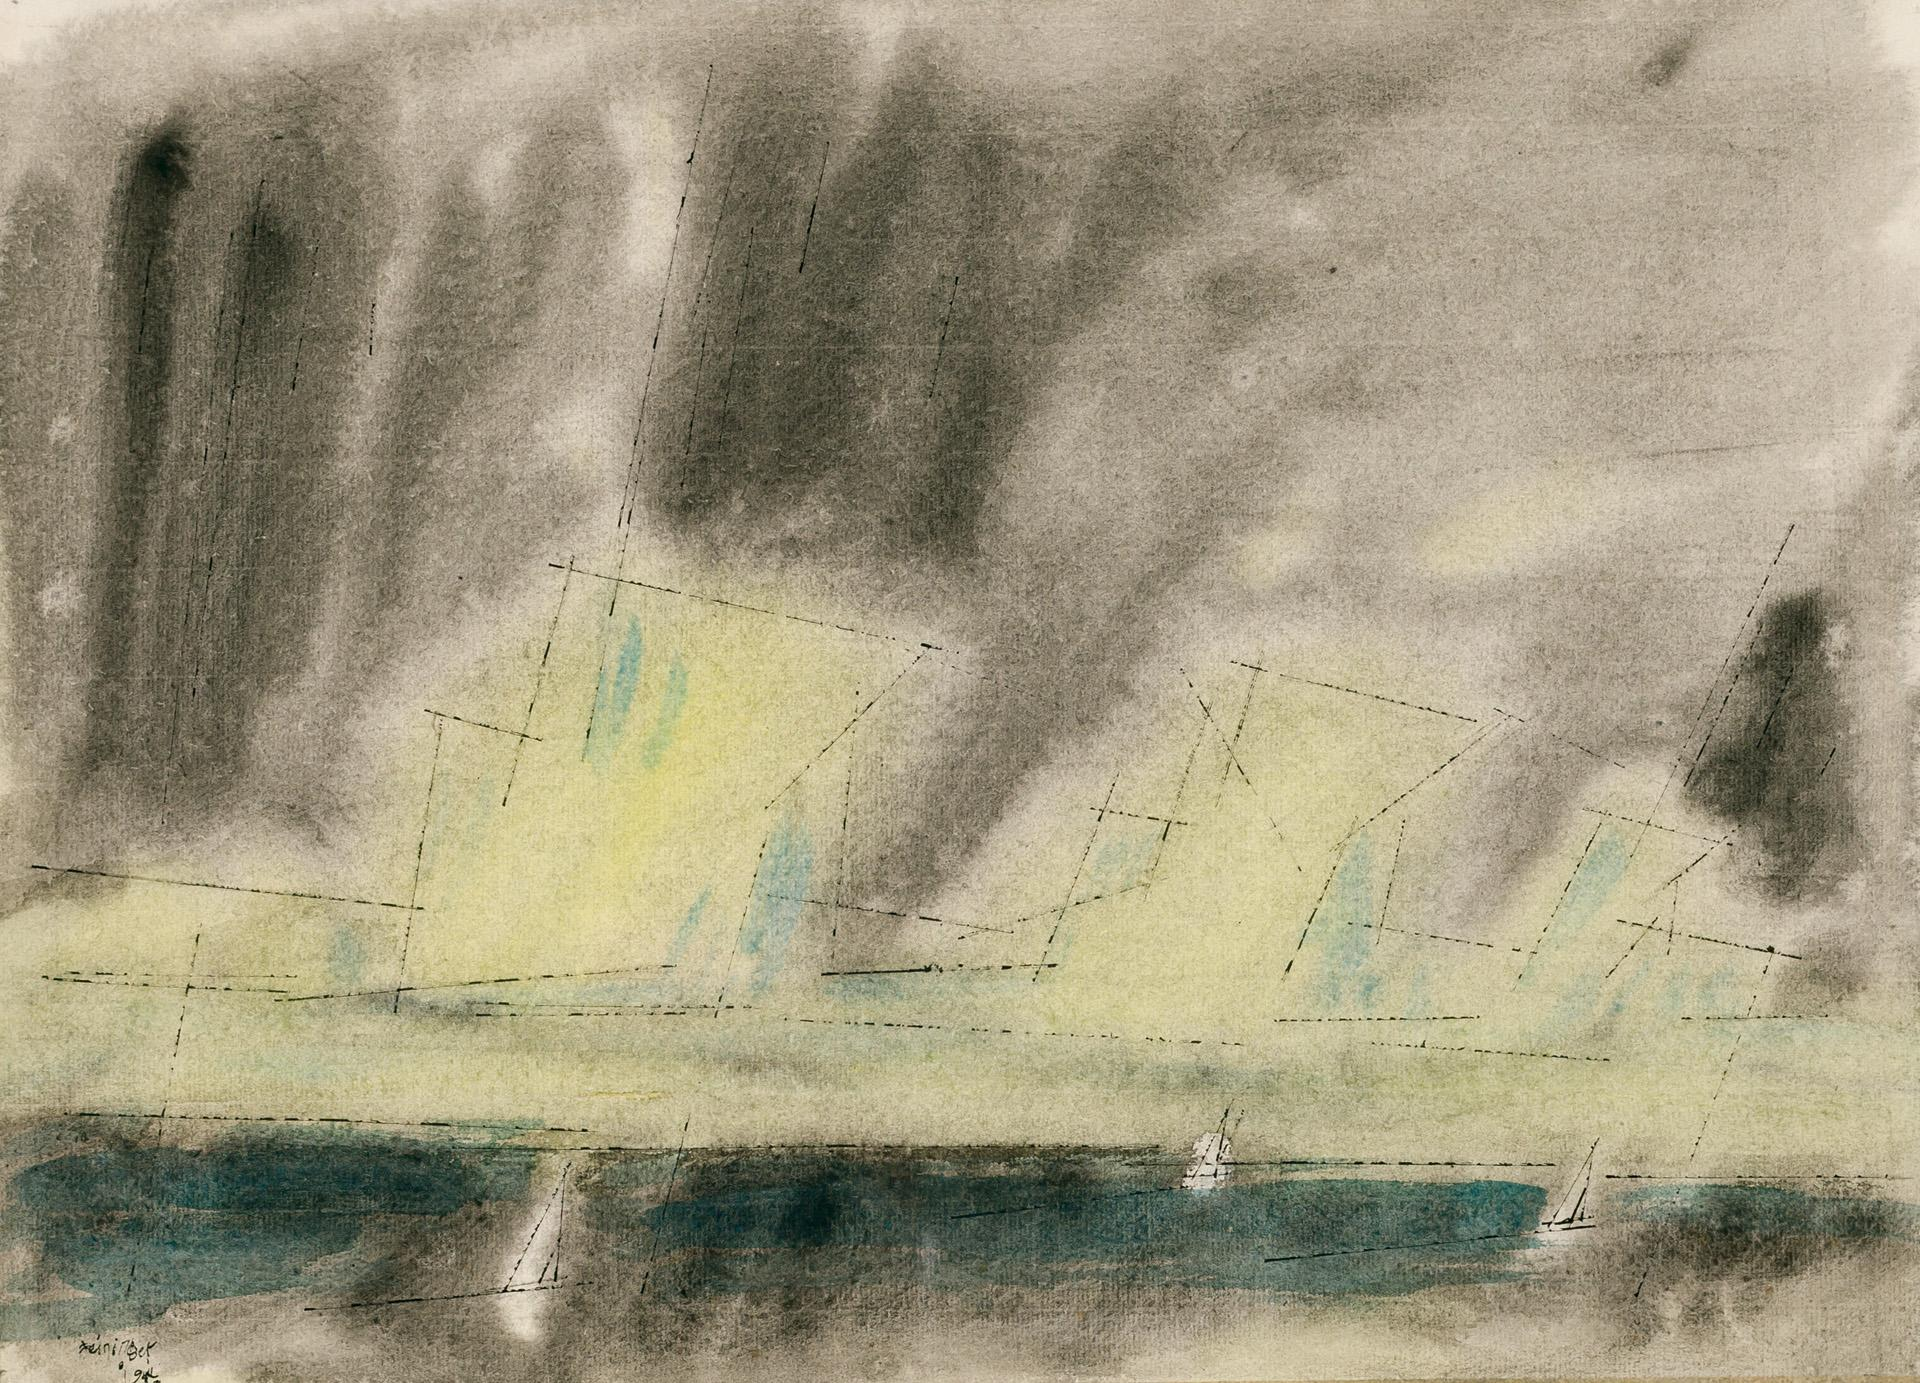 """LYONEL FEININGER, American/German (1871-1956), """"Three Sails"""", ink and watercolor on paper, signed and dated lower left """"Feininger 19..."""